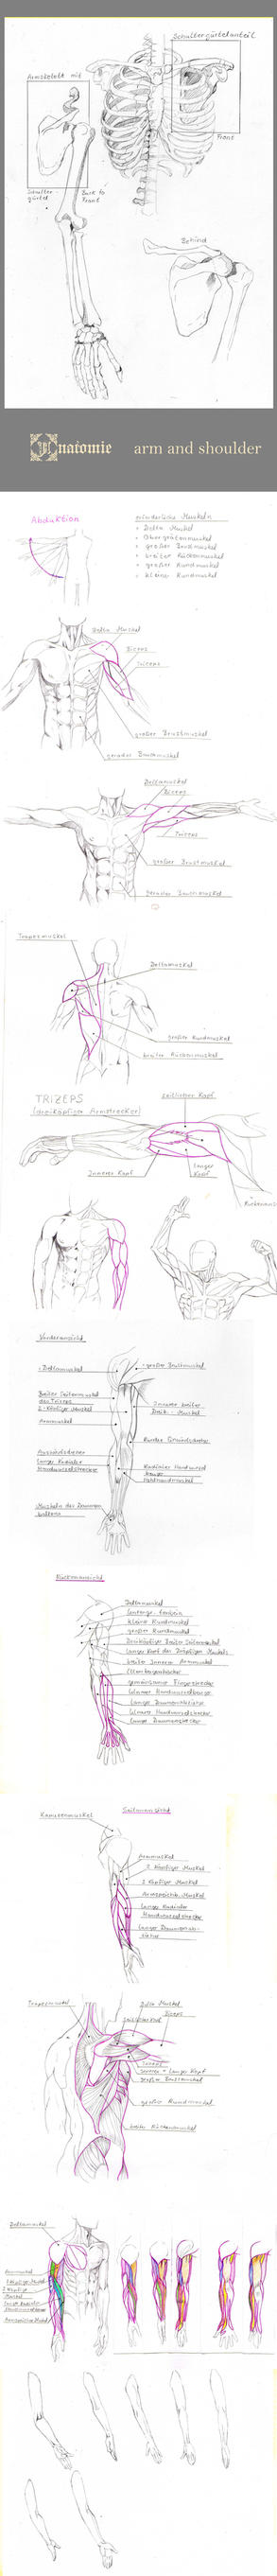 Arm Anatomie Stock by Eye-X-catcher on DeviantArt